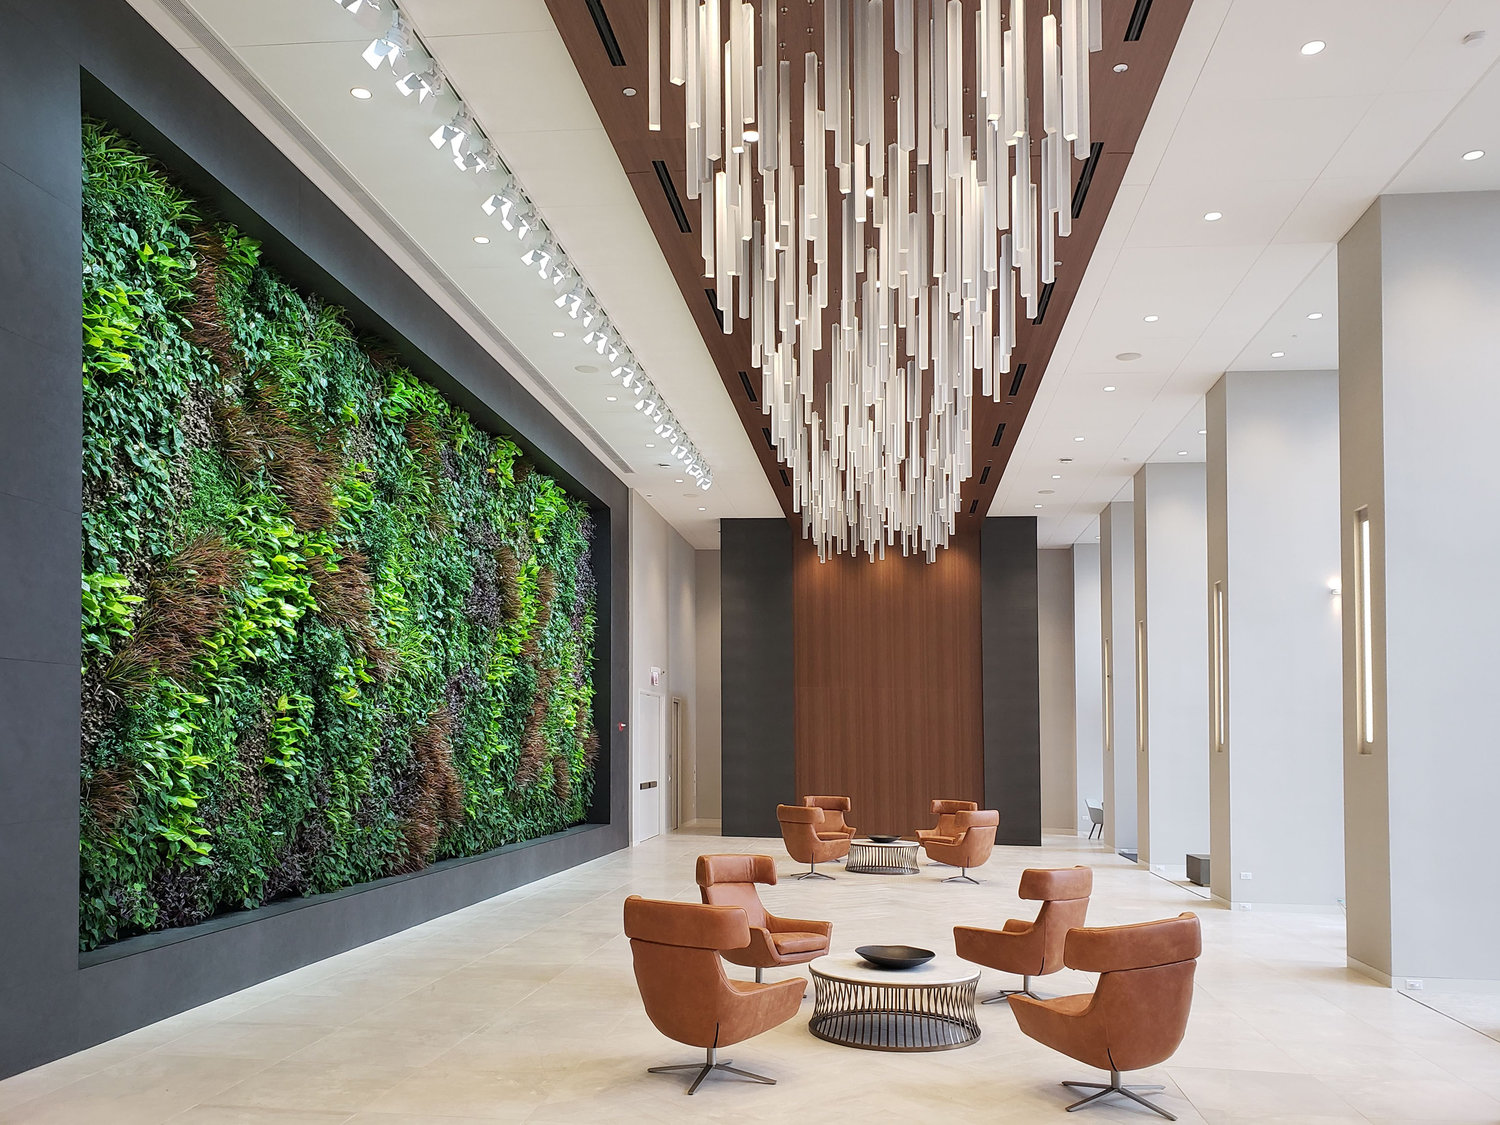 What Even Is Biophilic Design And Why Are We Seeing It ... Biophilic Design Home on ecological design, media design, office design, boom gate design, water design, organic architecture design, principles of design, evidence-based design, landscape design, barrier design,